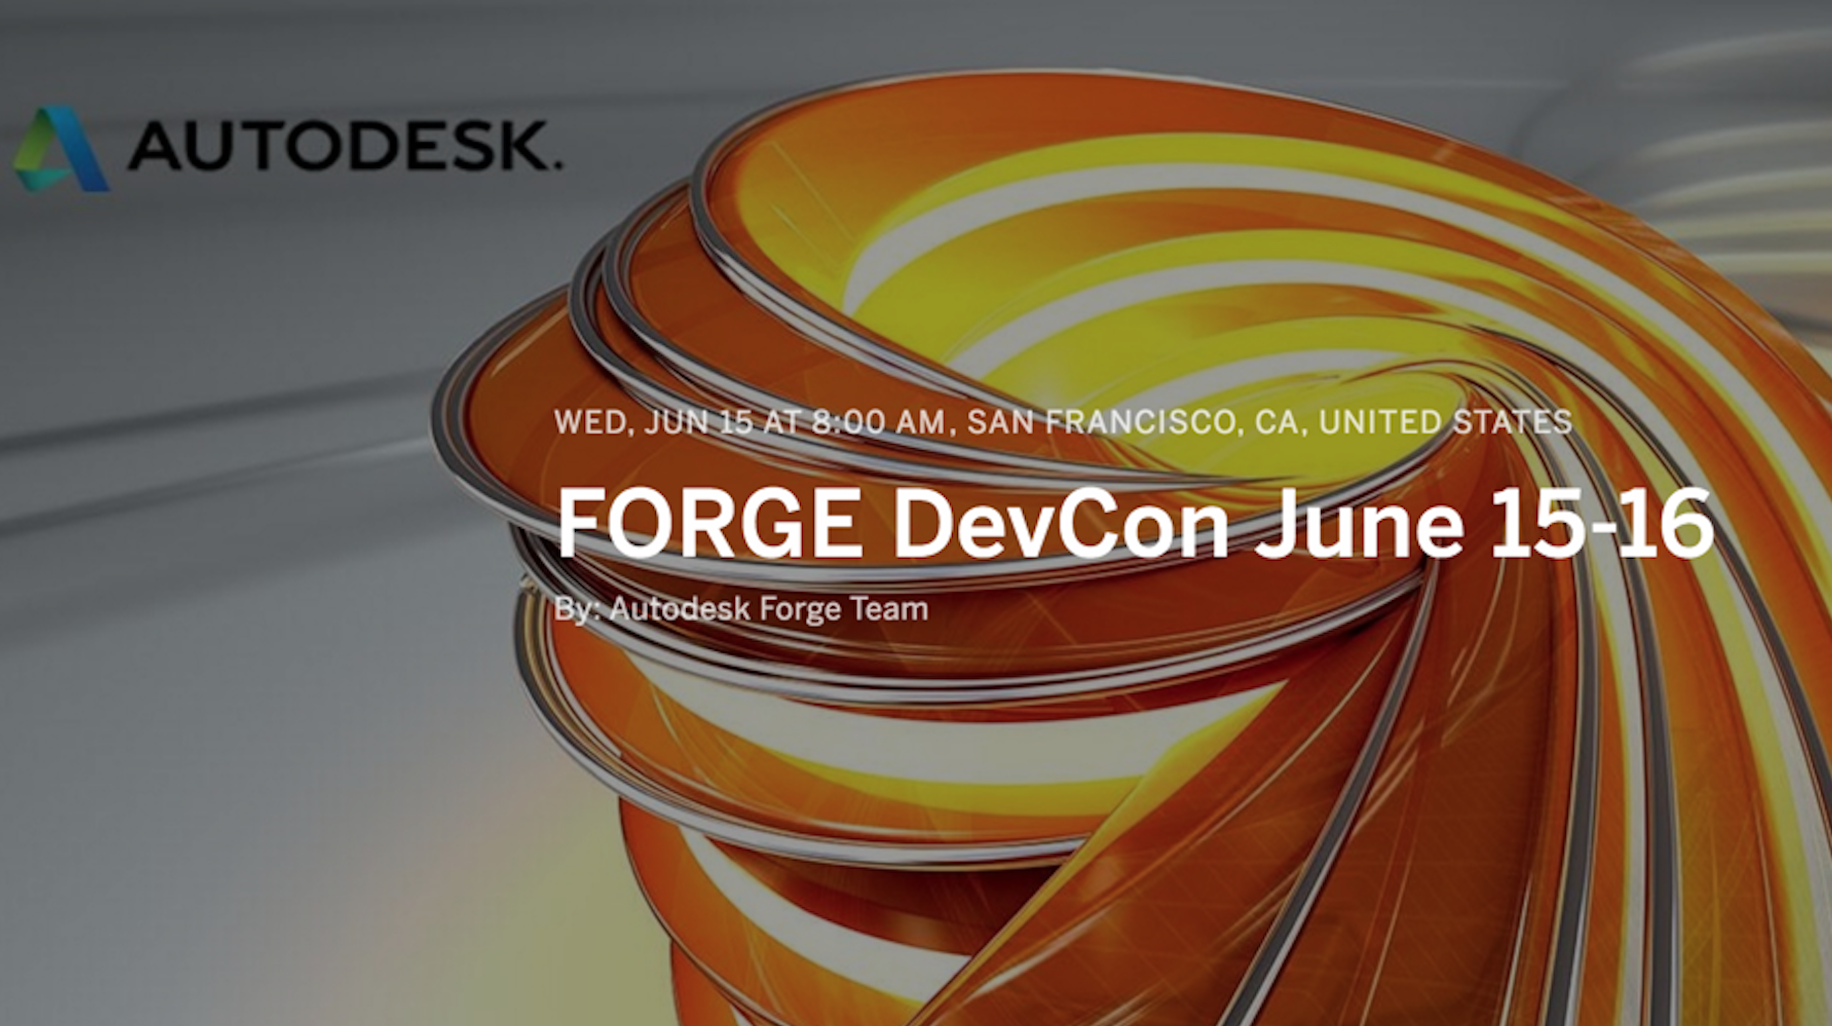 VIP Invitation to Autodesk Forge Happy Hour